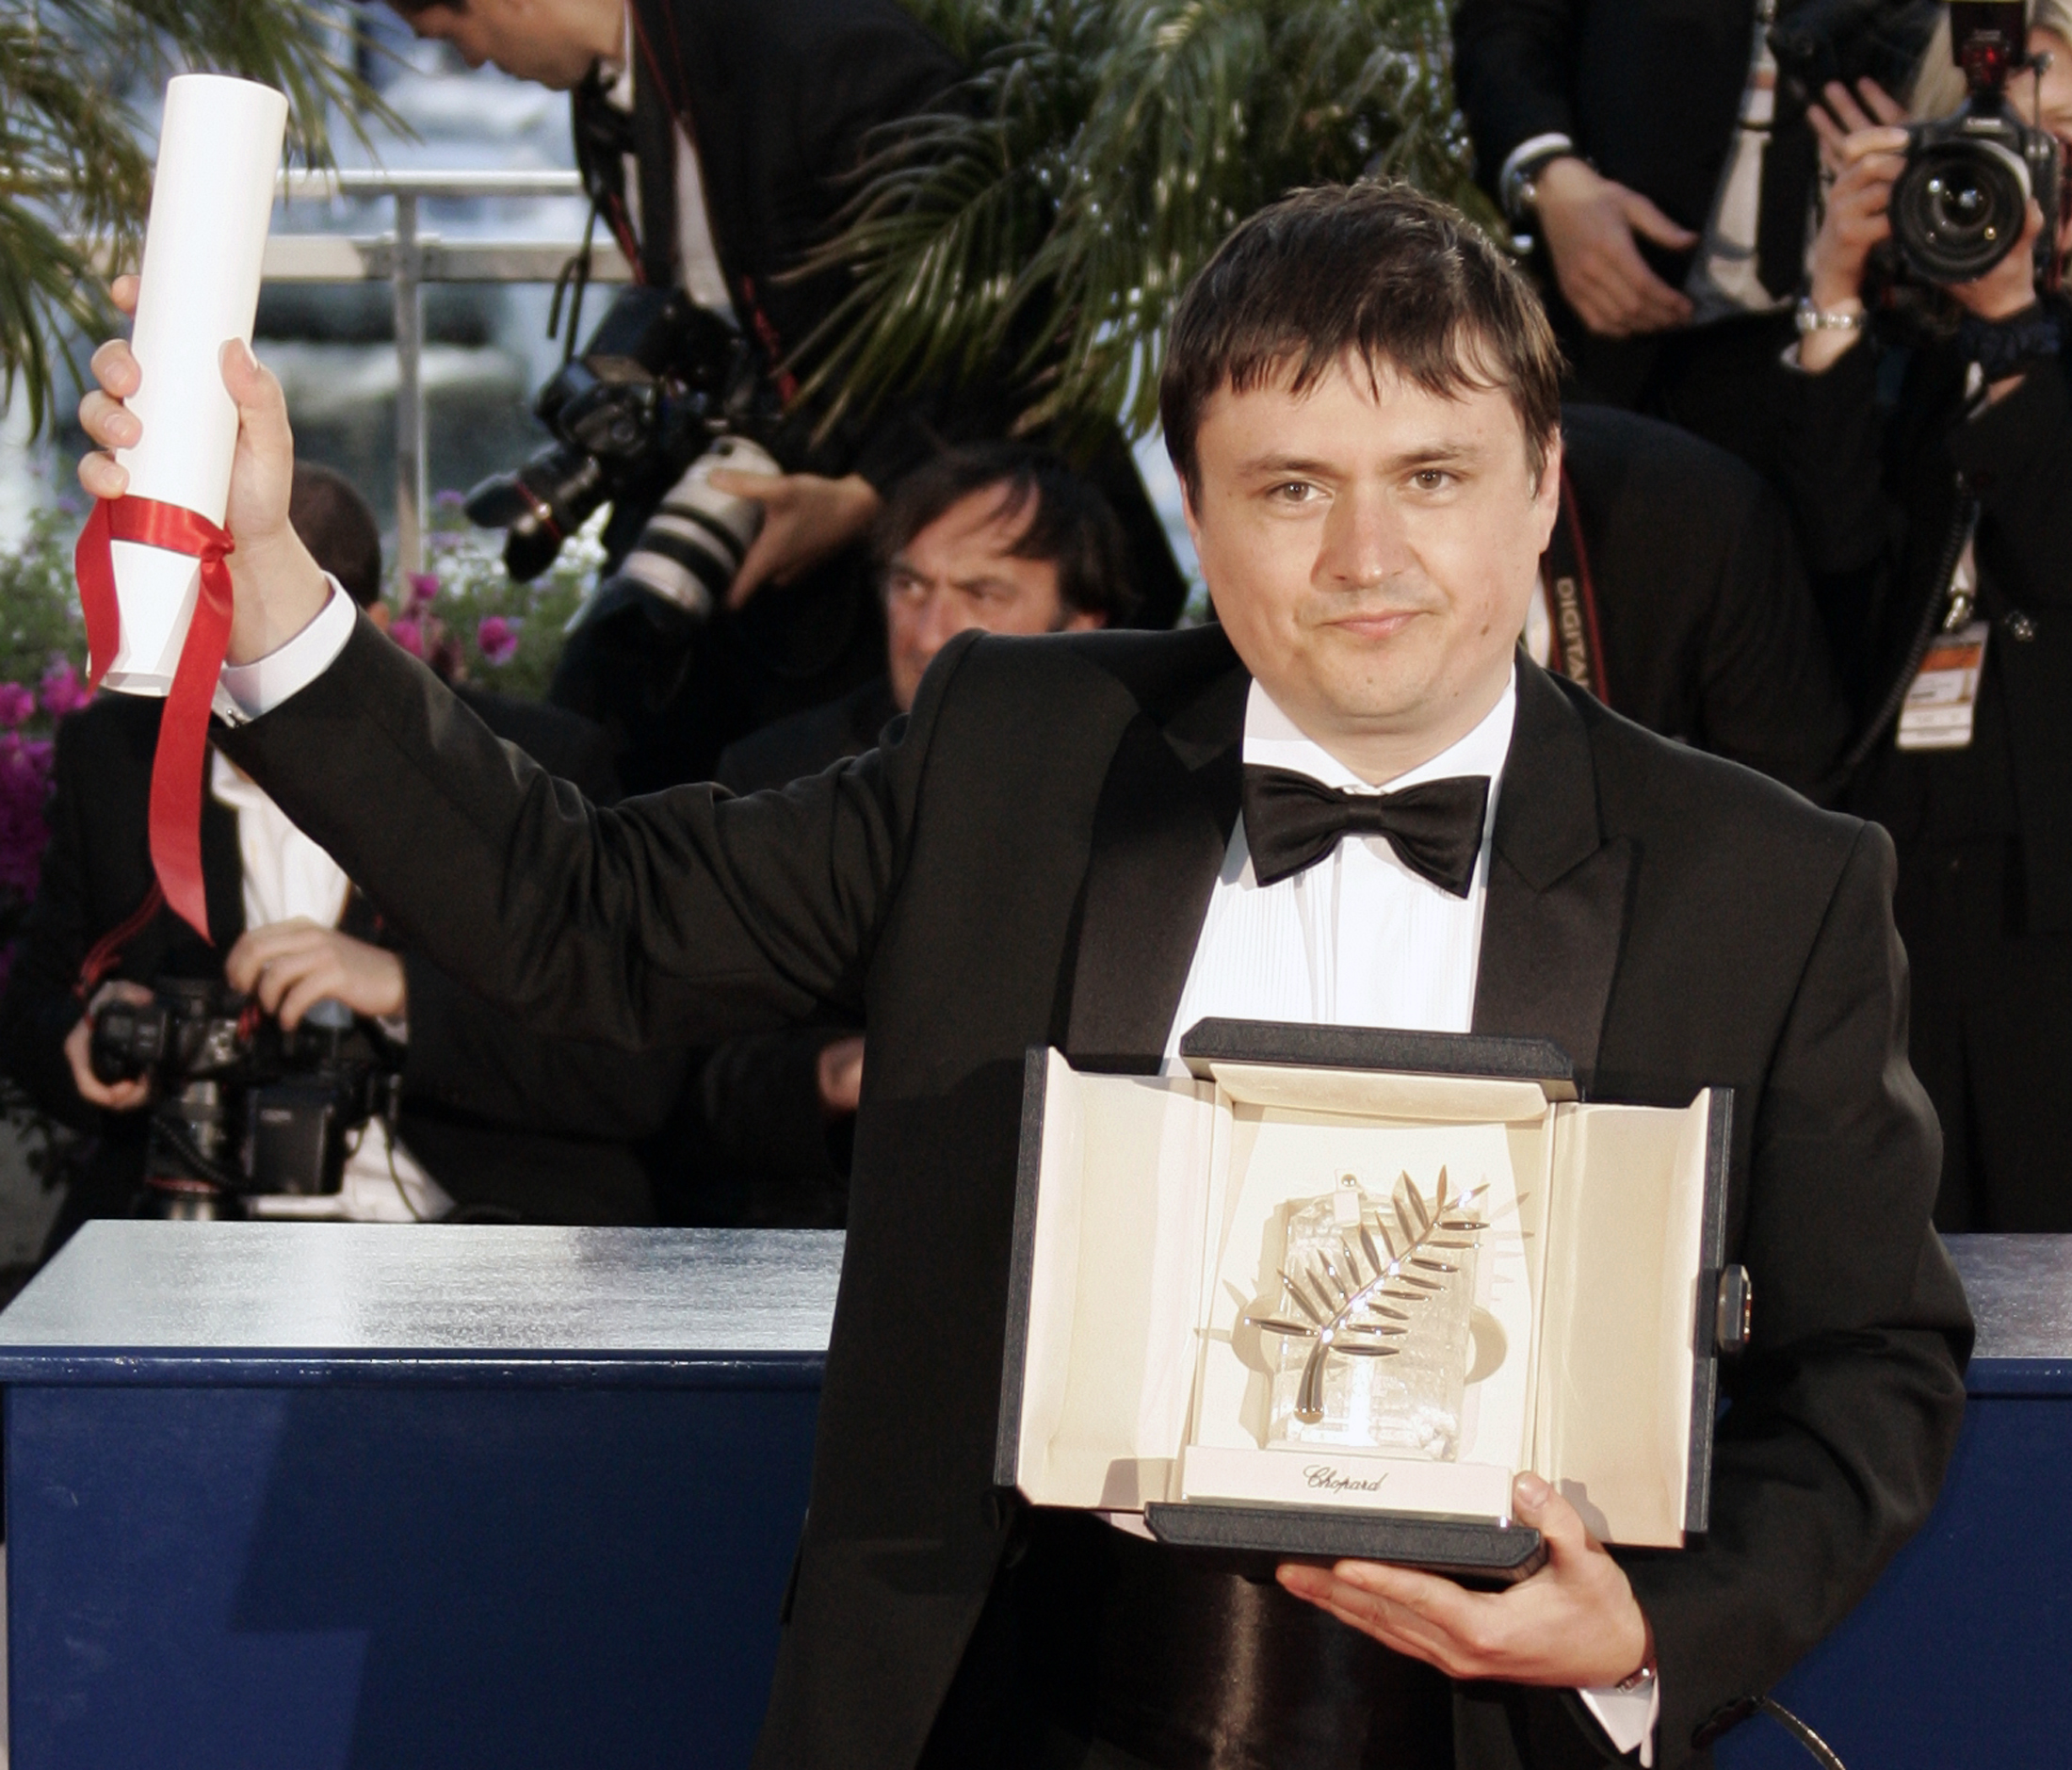 Romanian director Cristian Mungiu holds the Palme d'Or award for his film